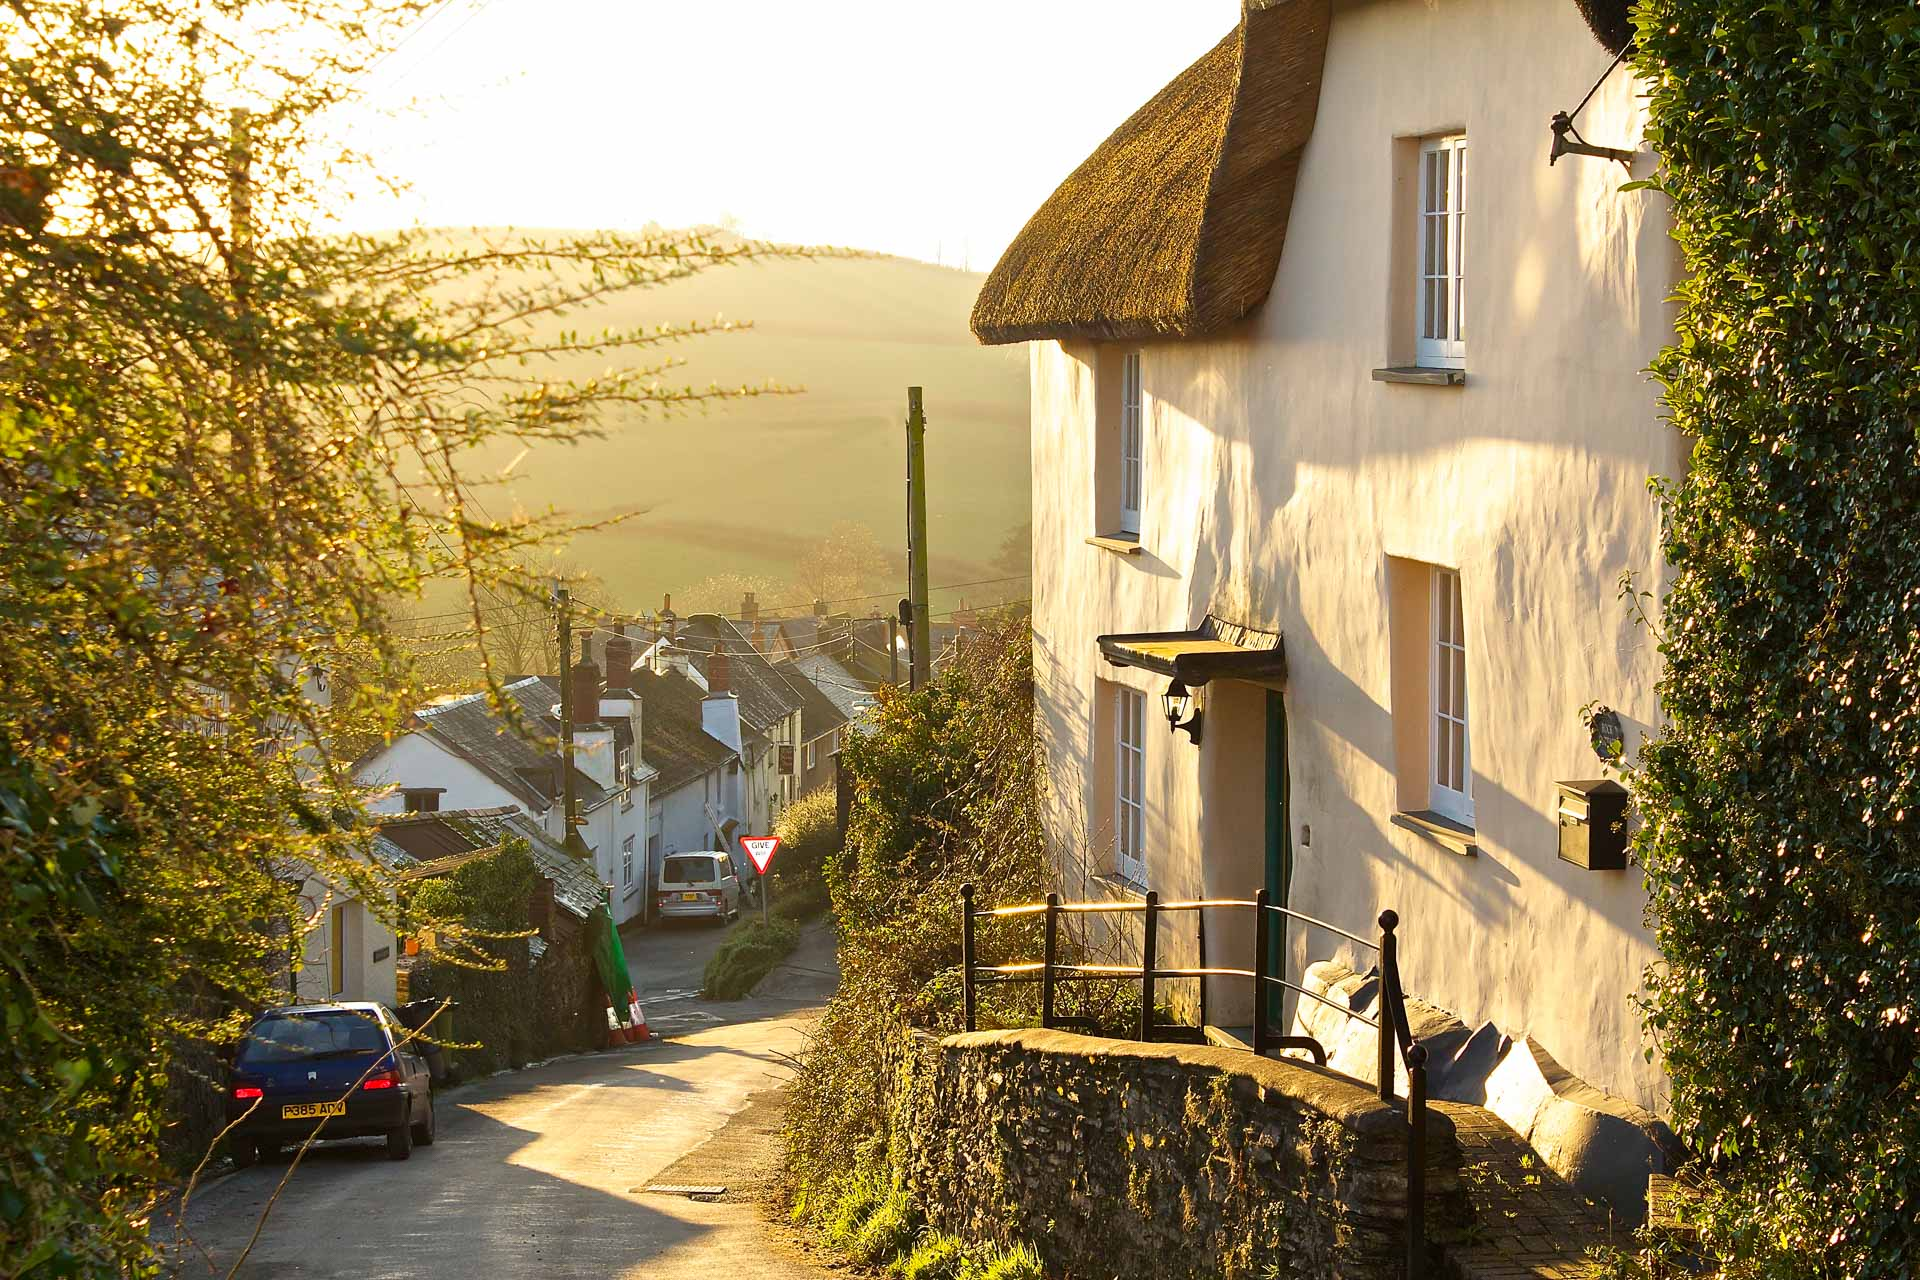 Goodleigh holiday cottages